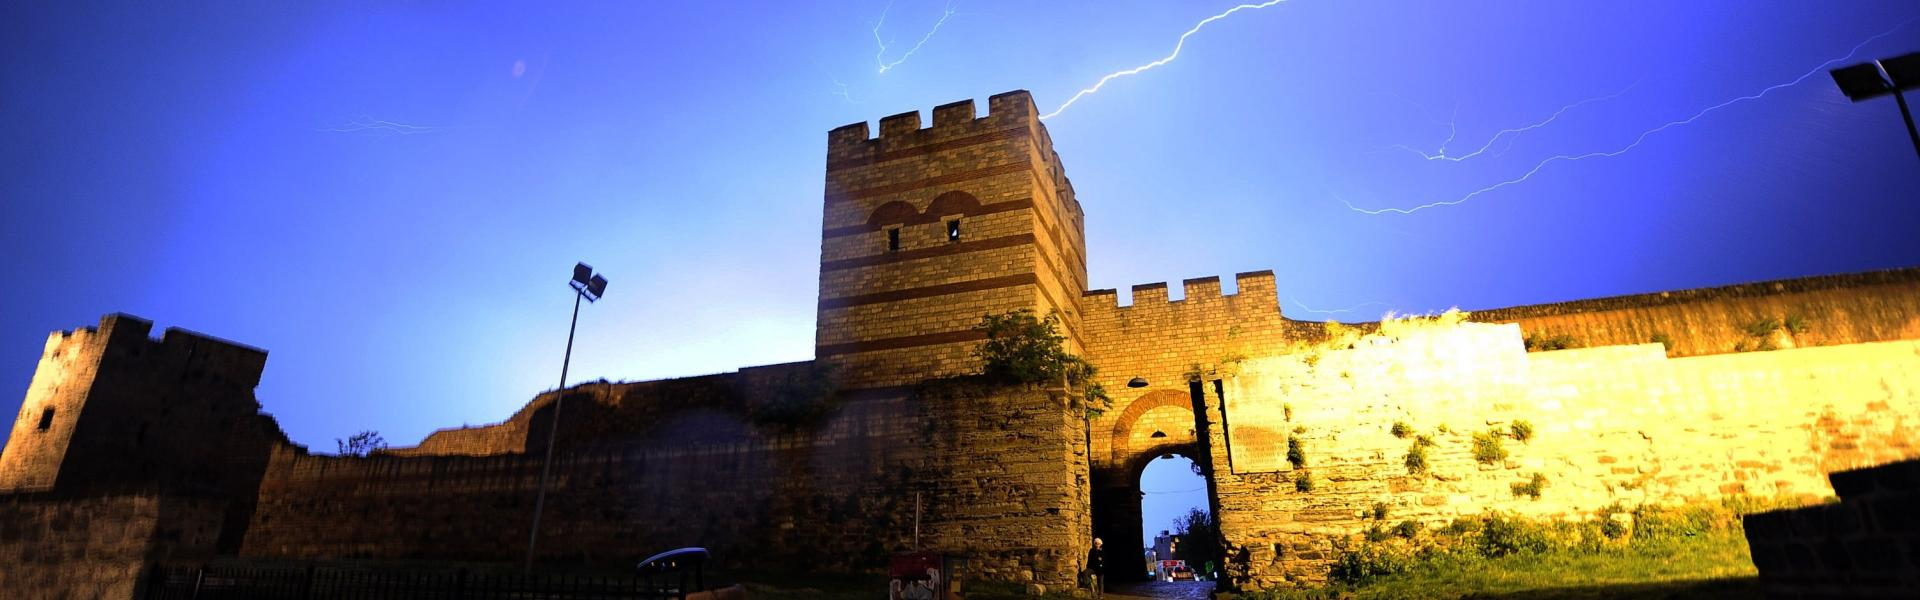 Lightning flashes are pictured during a storm above historical Byzantium walls on May 7, 2015 in Istanbul. AFP PHOTO / OZAN KOSE